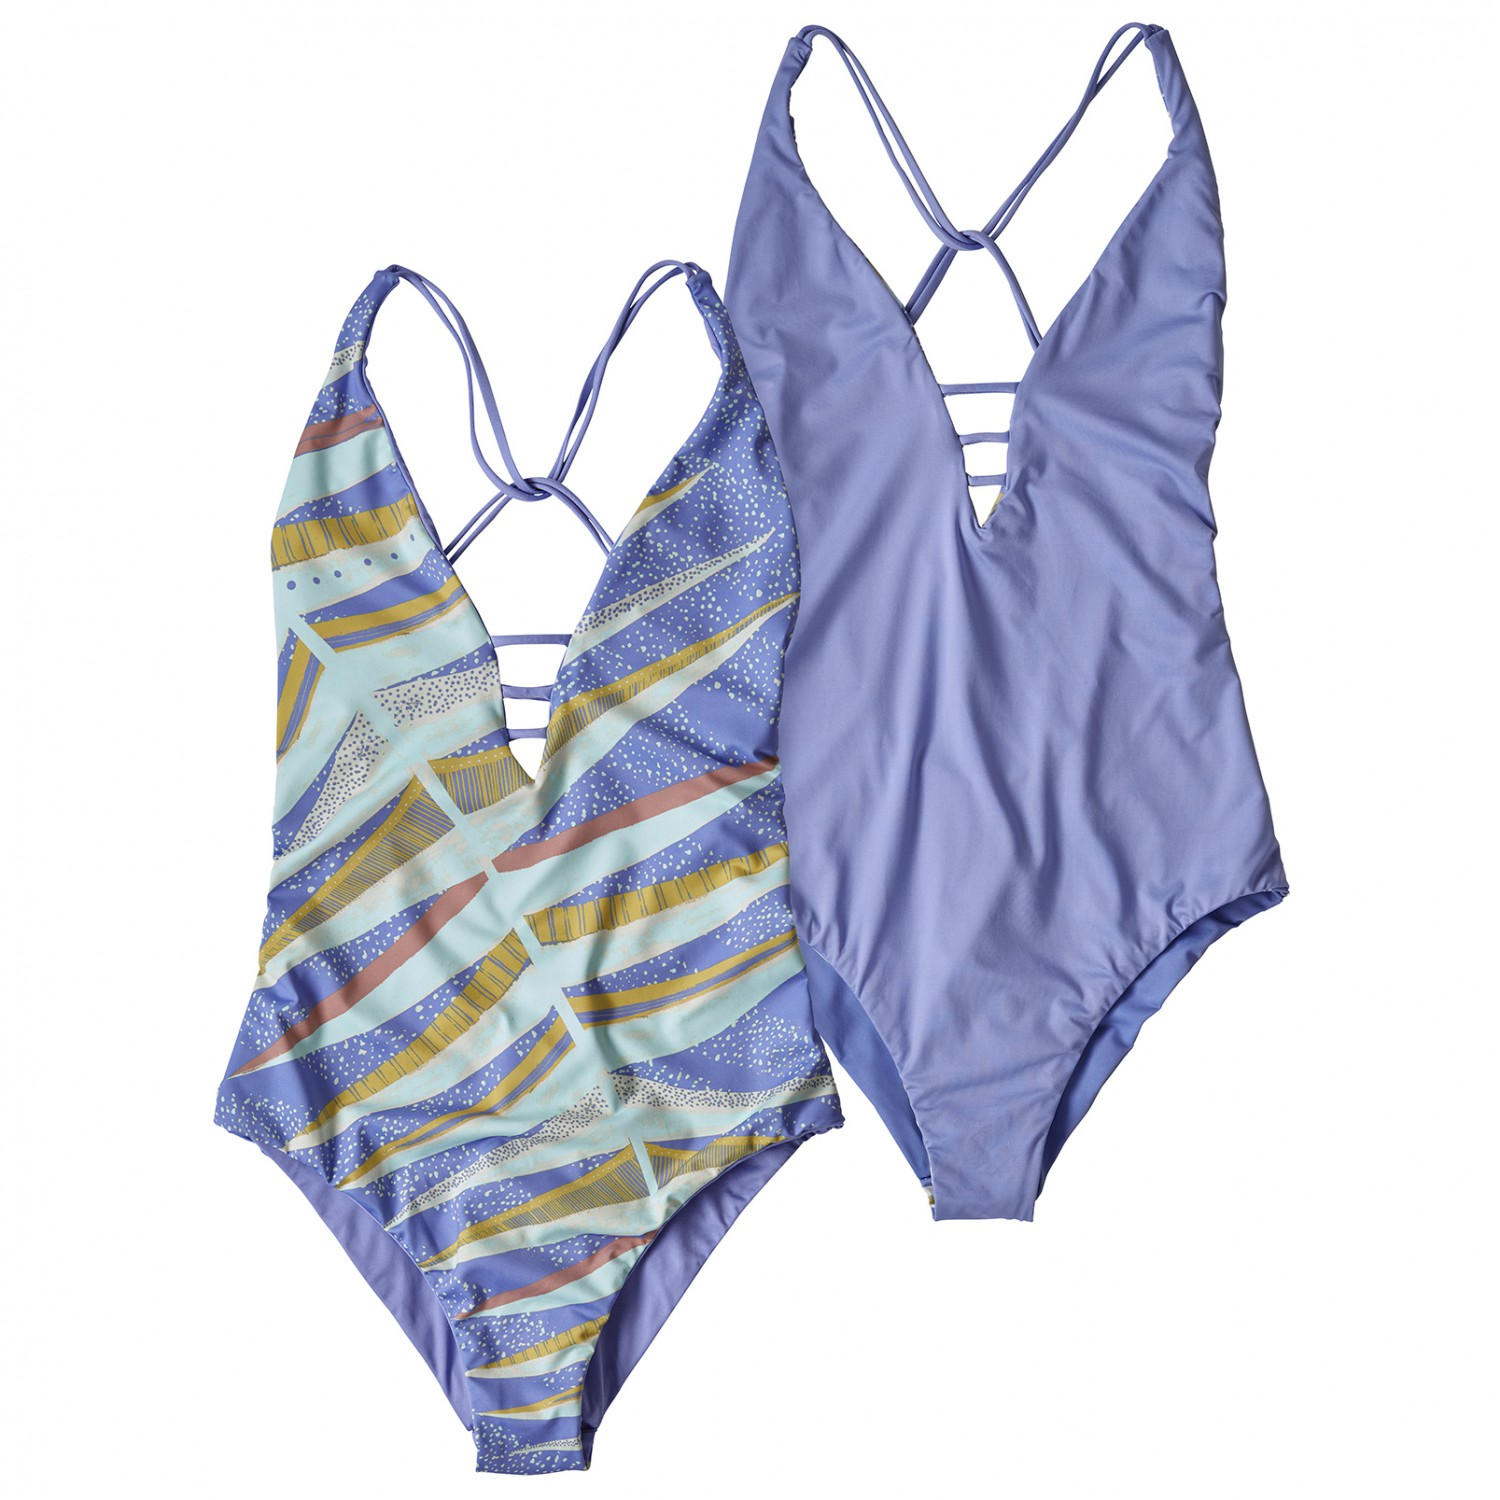 ce3a2fa4ba6b4 Patagonia - Women's Reversible Extended Break One-Piece - Swimsuit ...